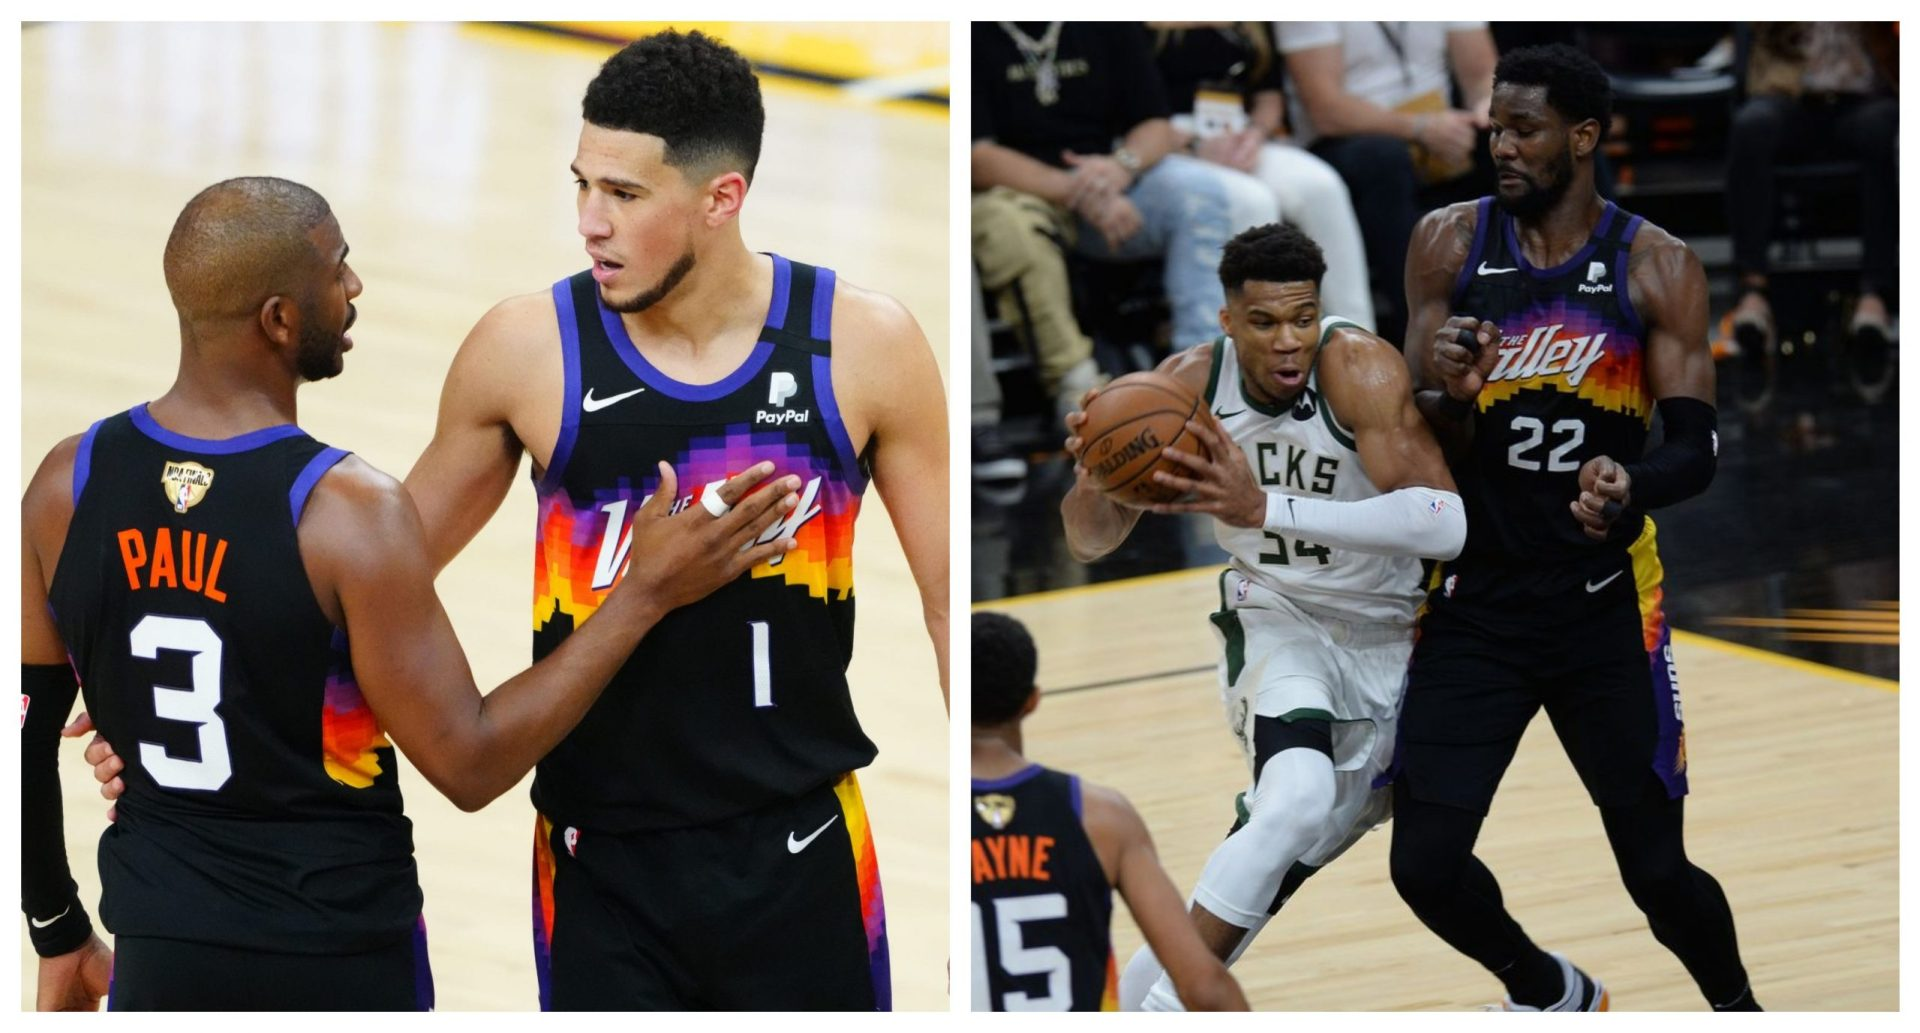 NBA Finals Review: Chris Paul leads Suns' charge in maiden finals appearance to draw first blood - THE SPORTS ROOM